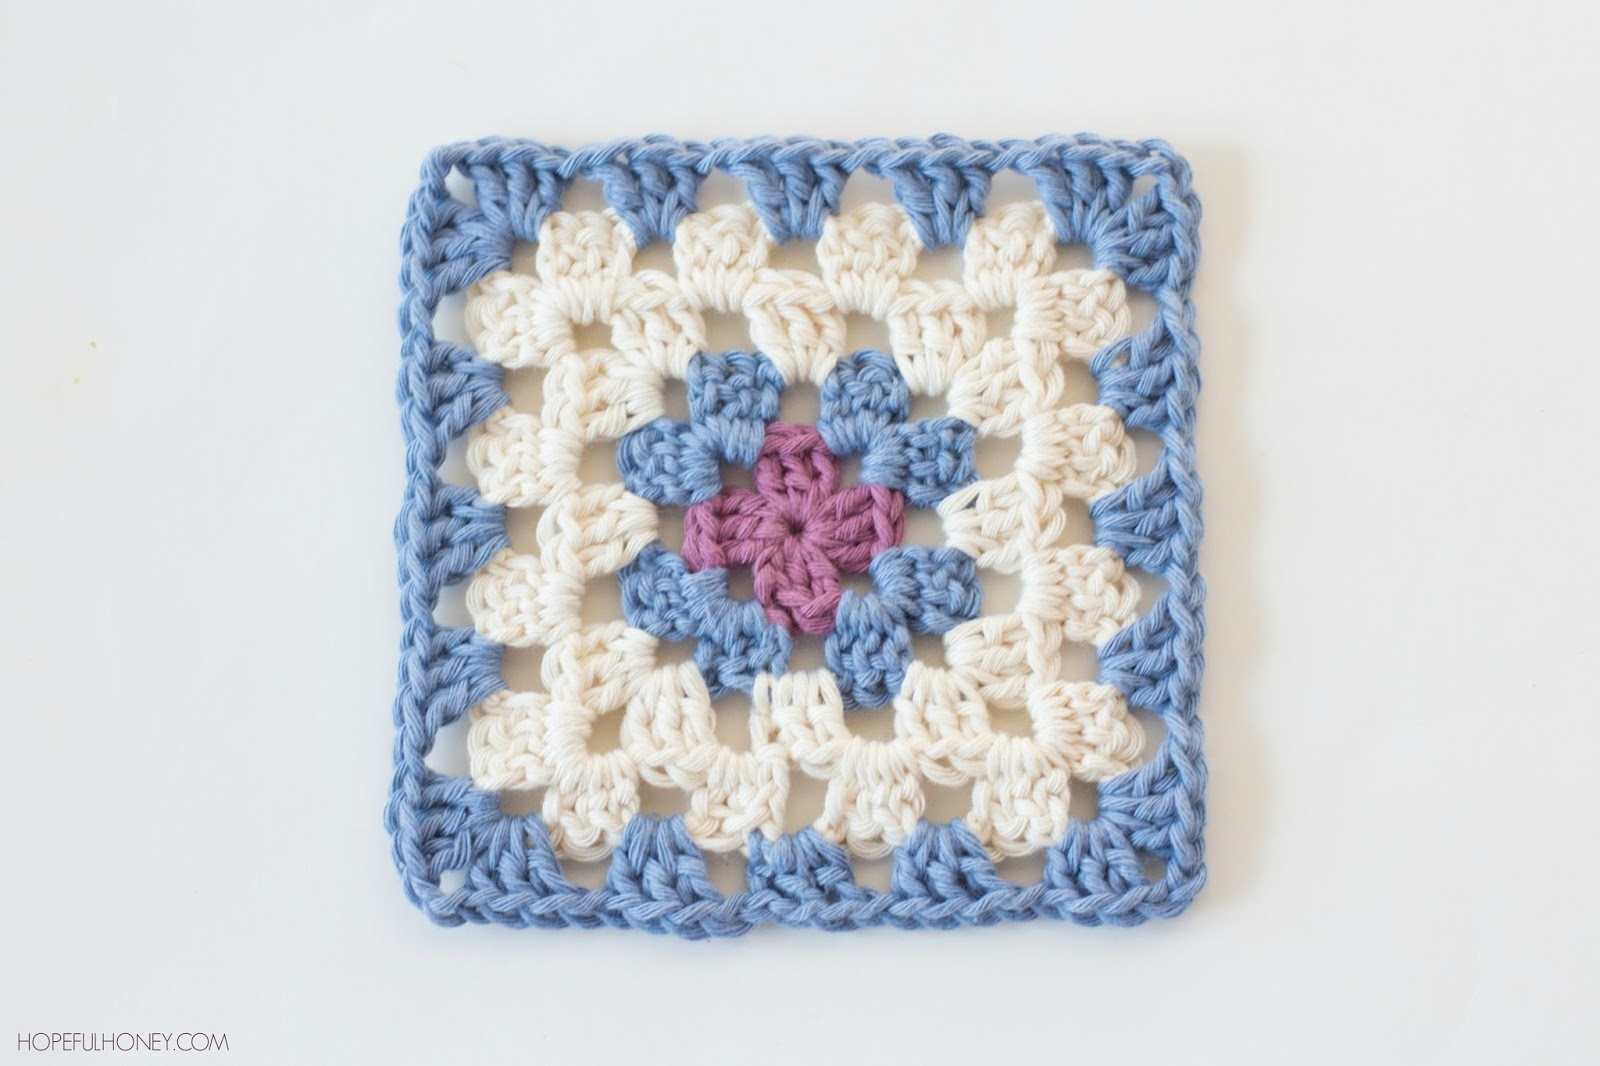 Crochet Easy Granny Square Patterns : Hopeful Honey Craft, Crochet, Create: Classic Granny ...